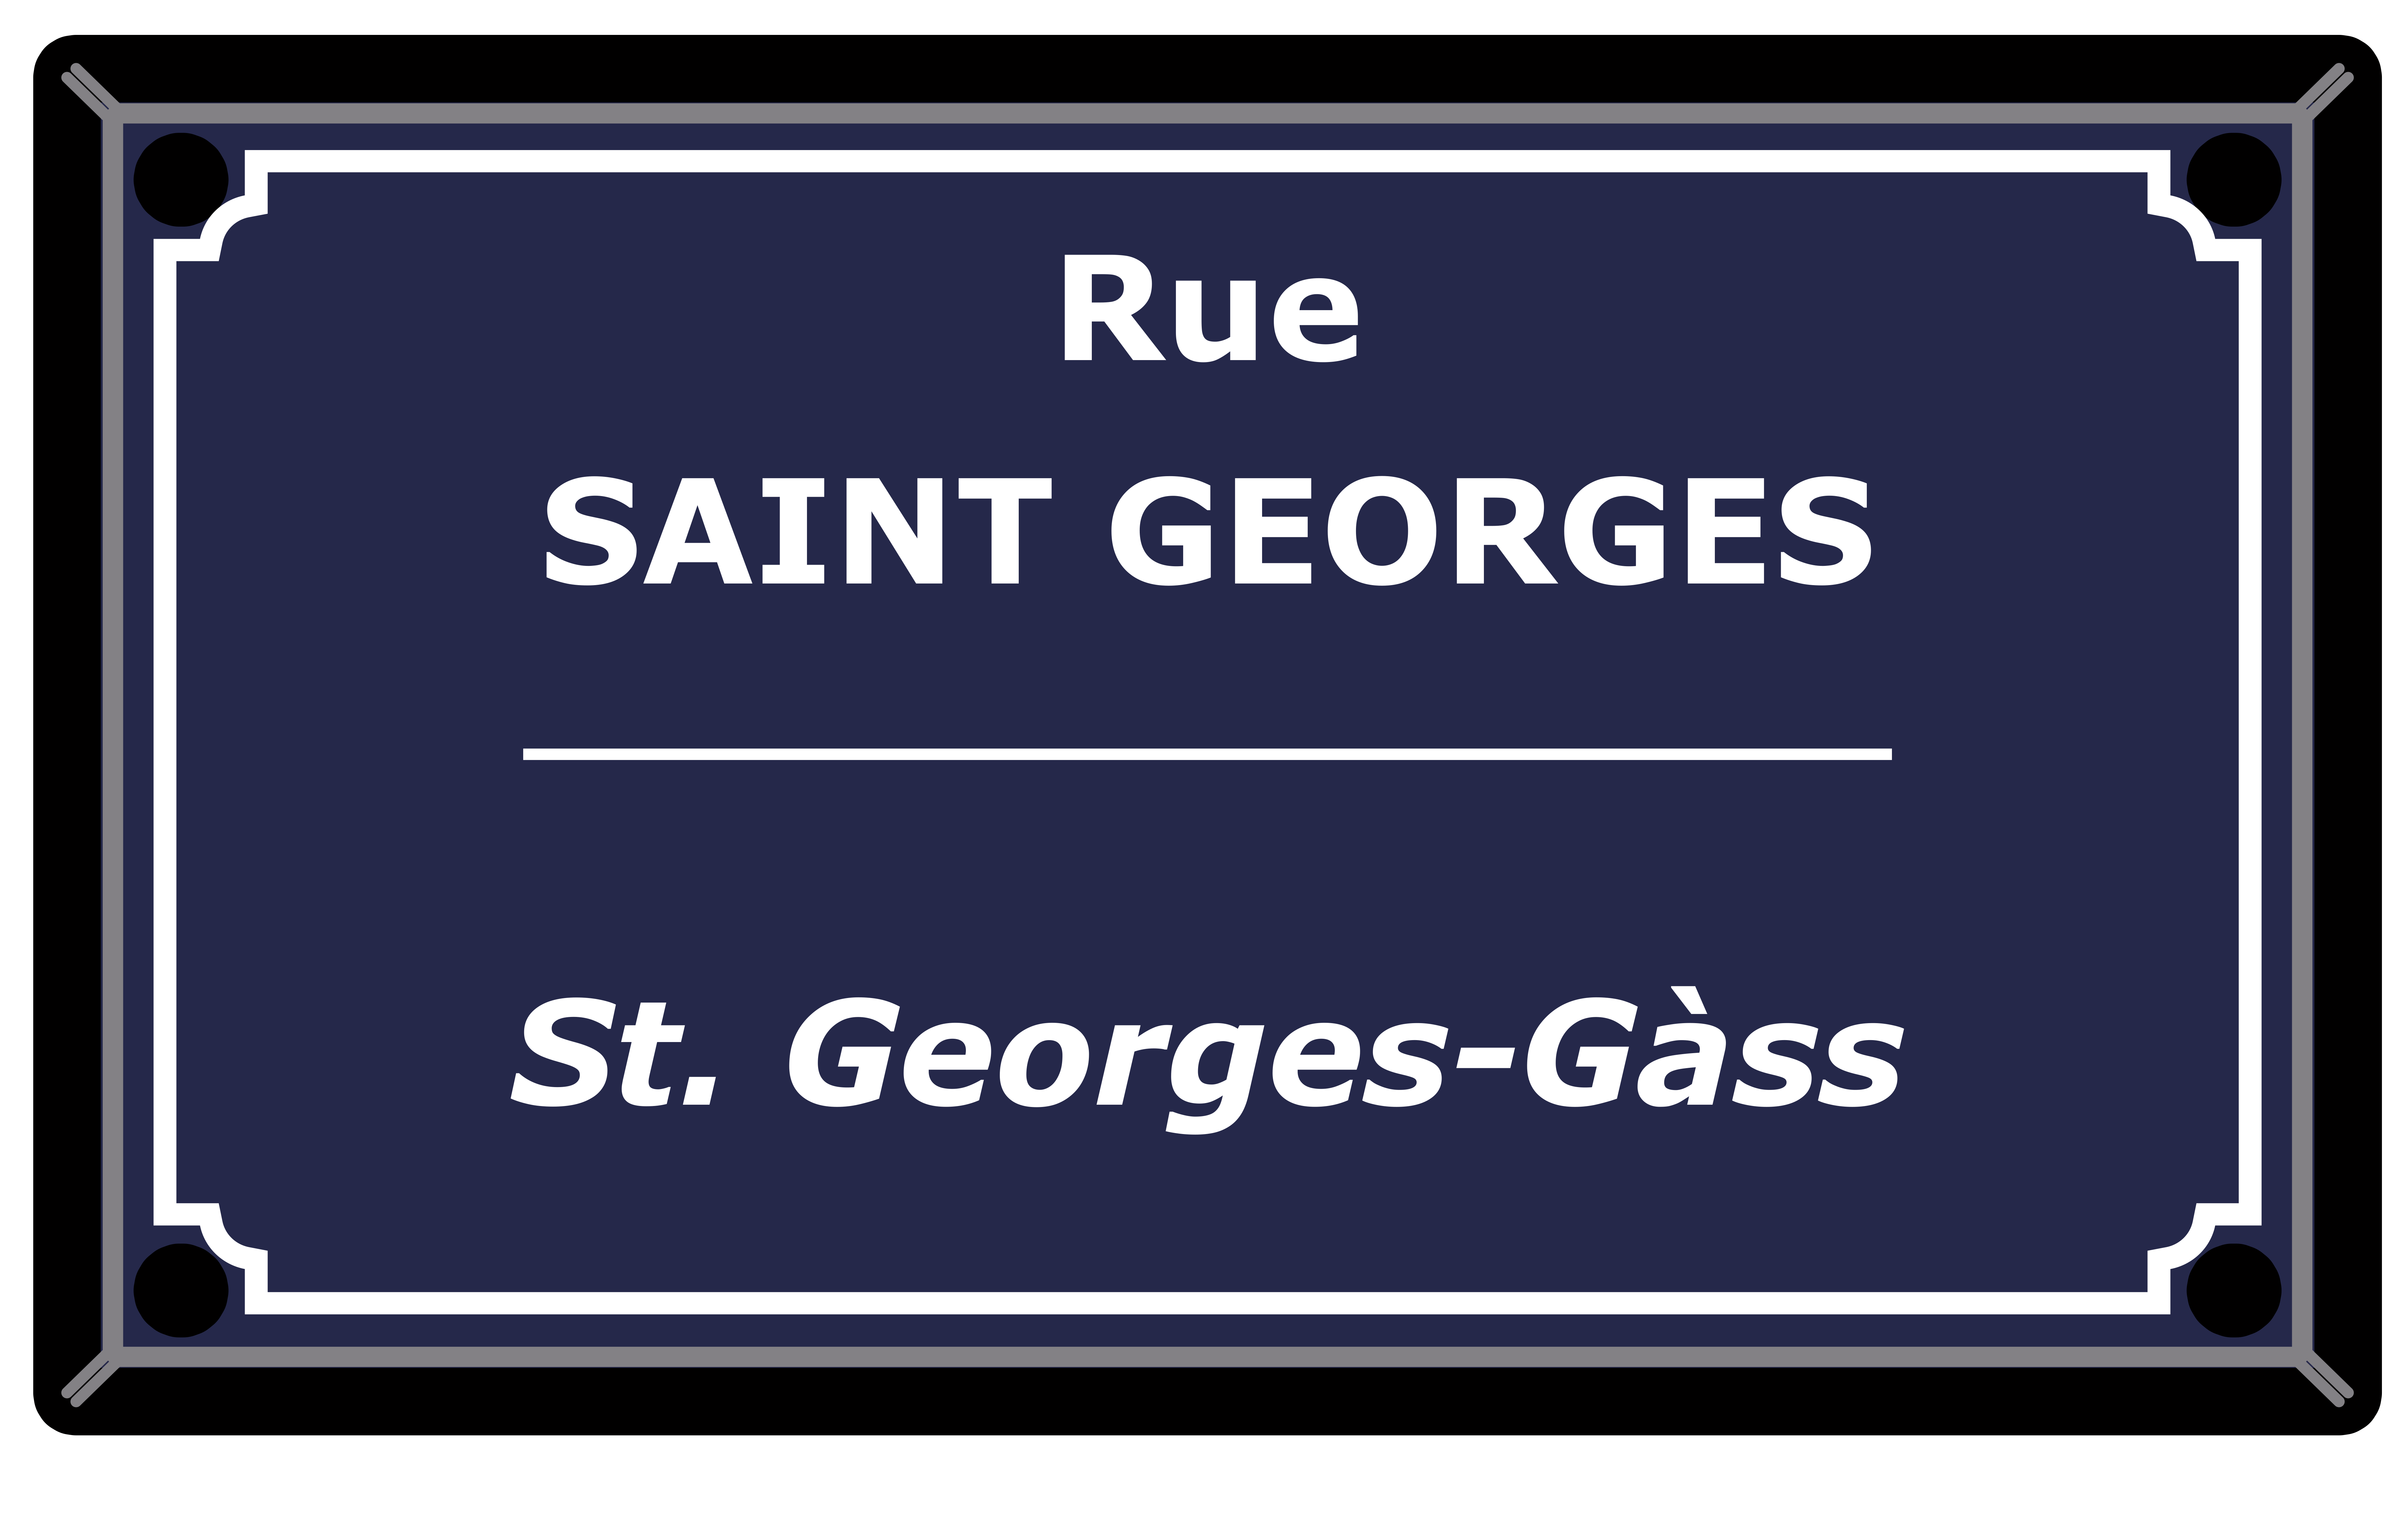 Rue Saint-Georges